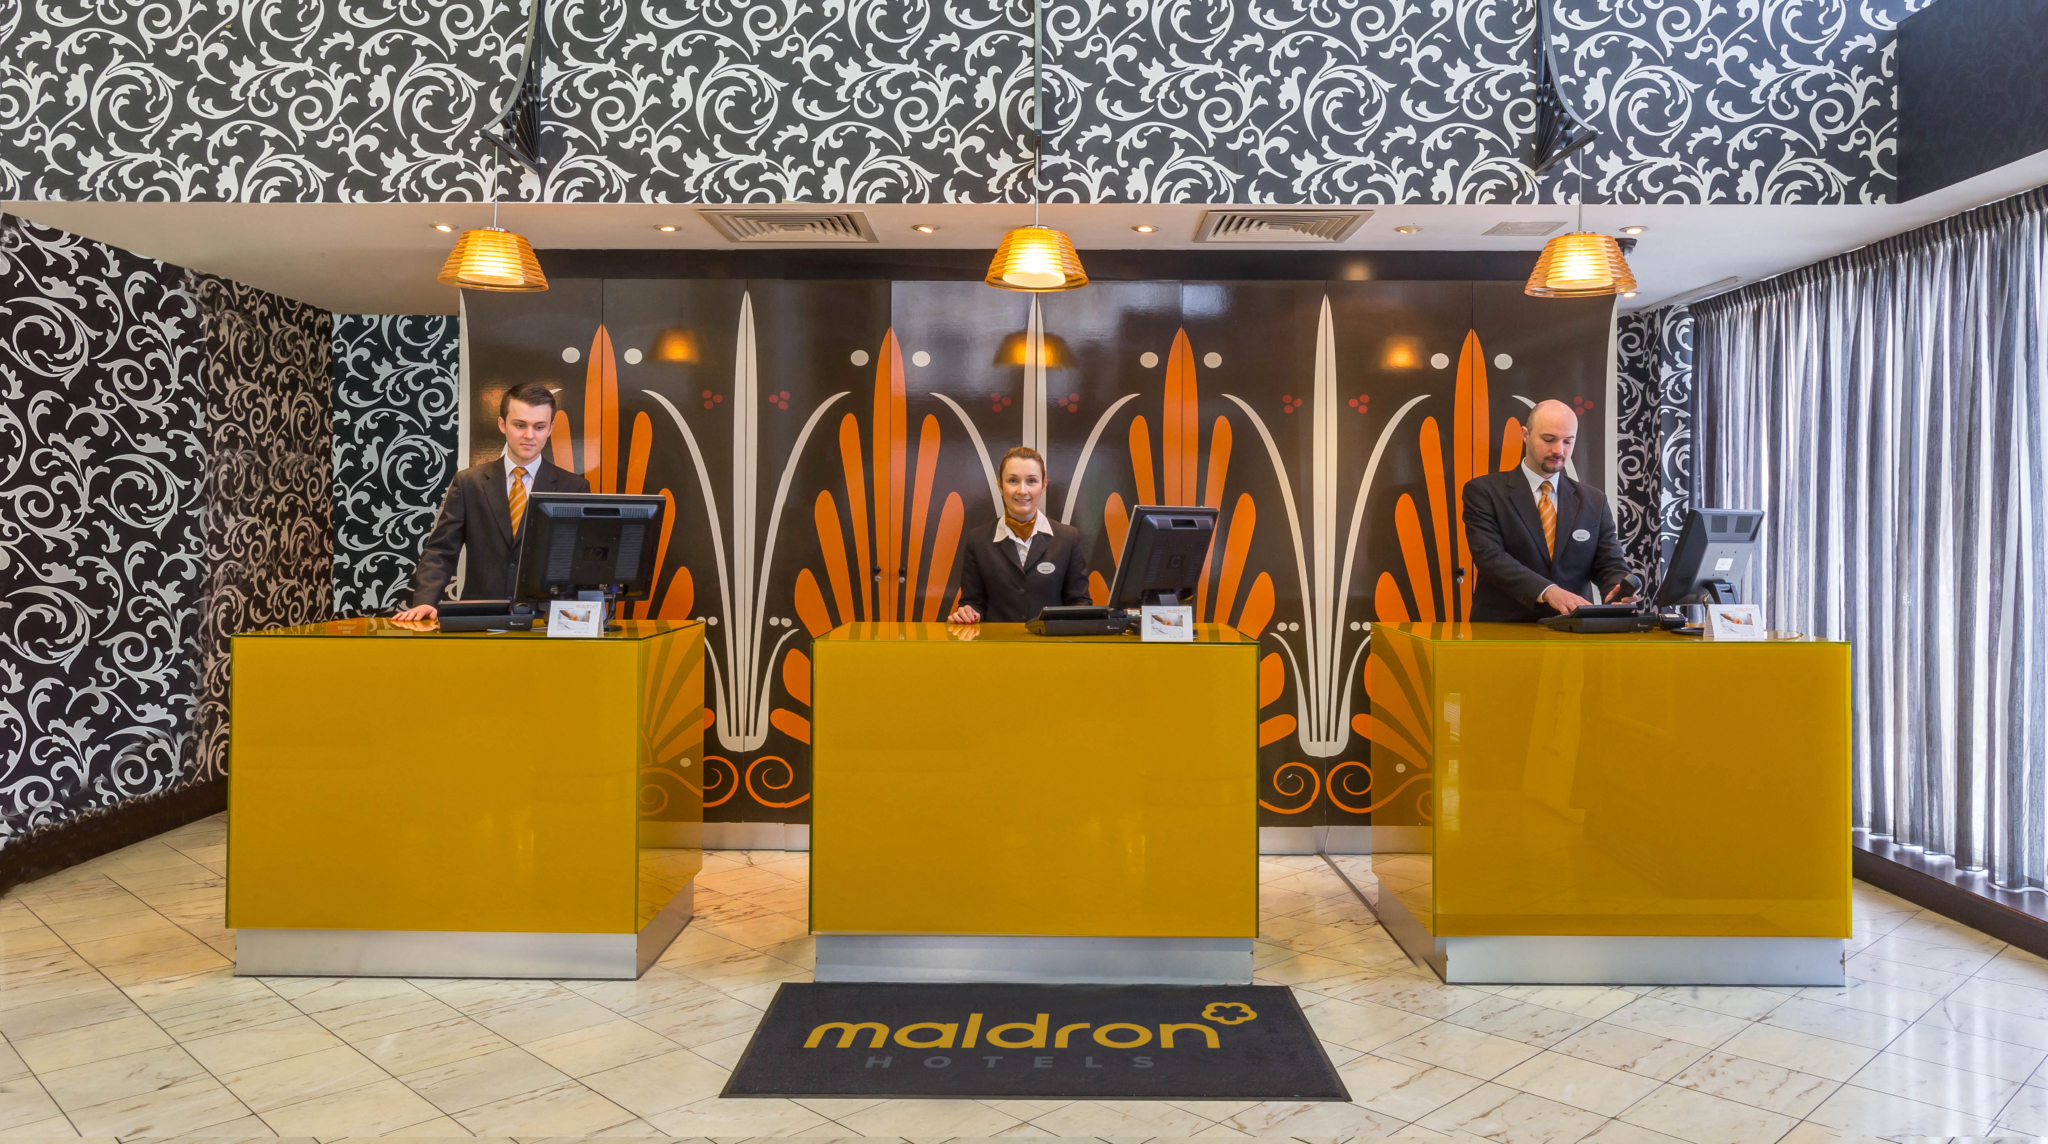 friendly-reception-team-look-forward-to-welcoming-you-to-Maldron-Hotel-Parnell-Square-Dublin